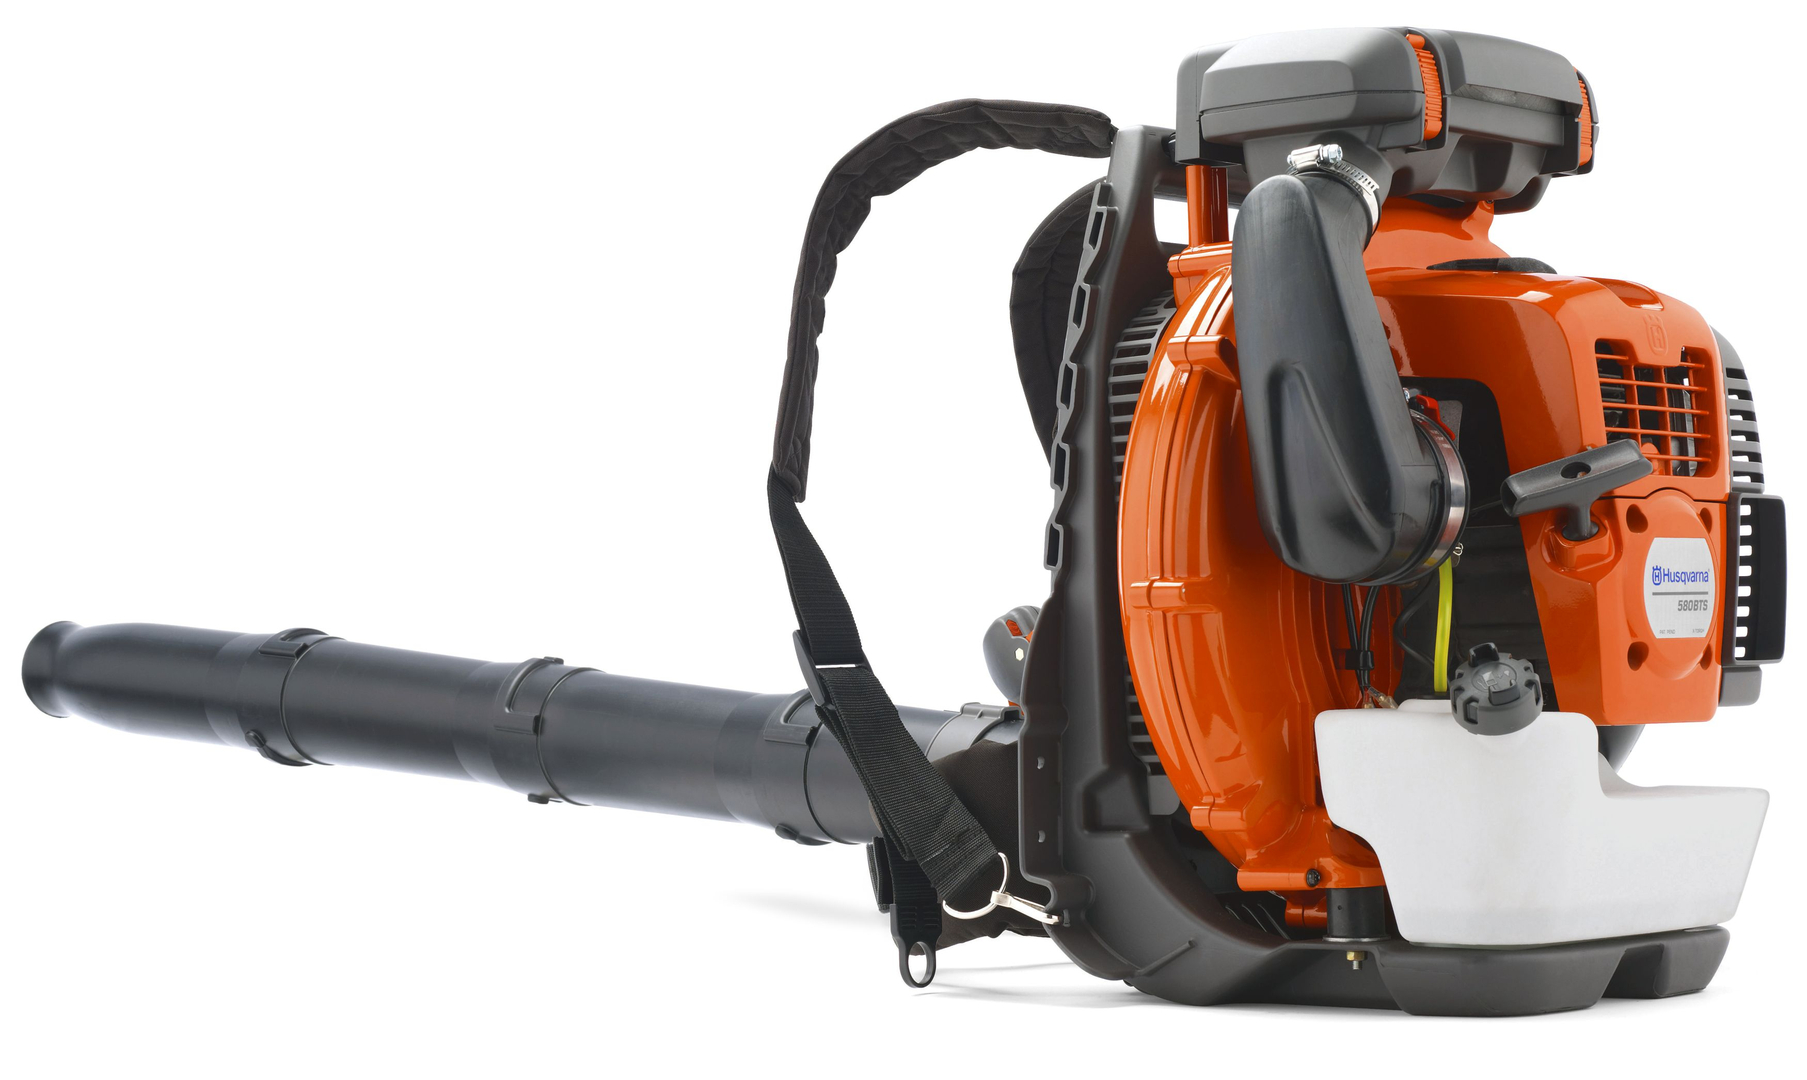 Largeselection of mowers blowers chainsaws trimmers and all other outdoor power equipment